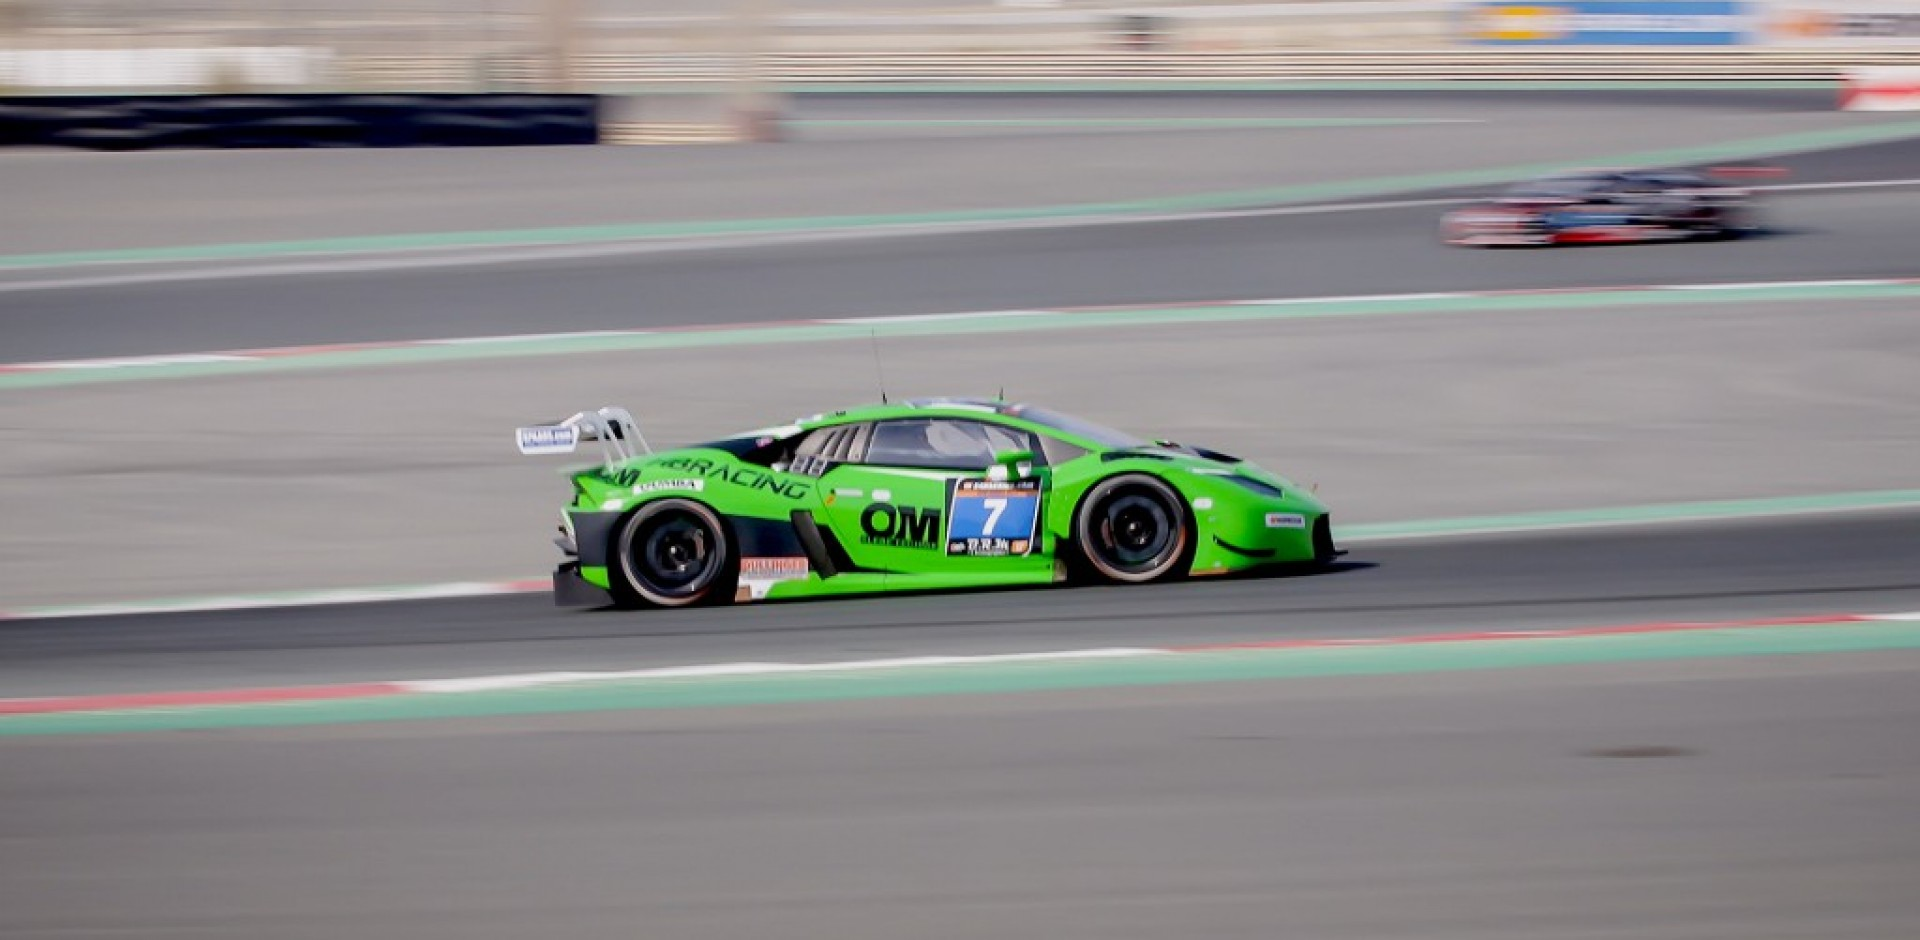 Fire leads to an early end of Norbert Siedler's Dubai 24 Hours